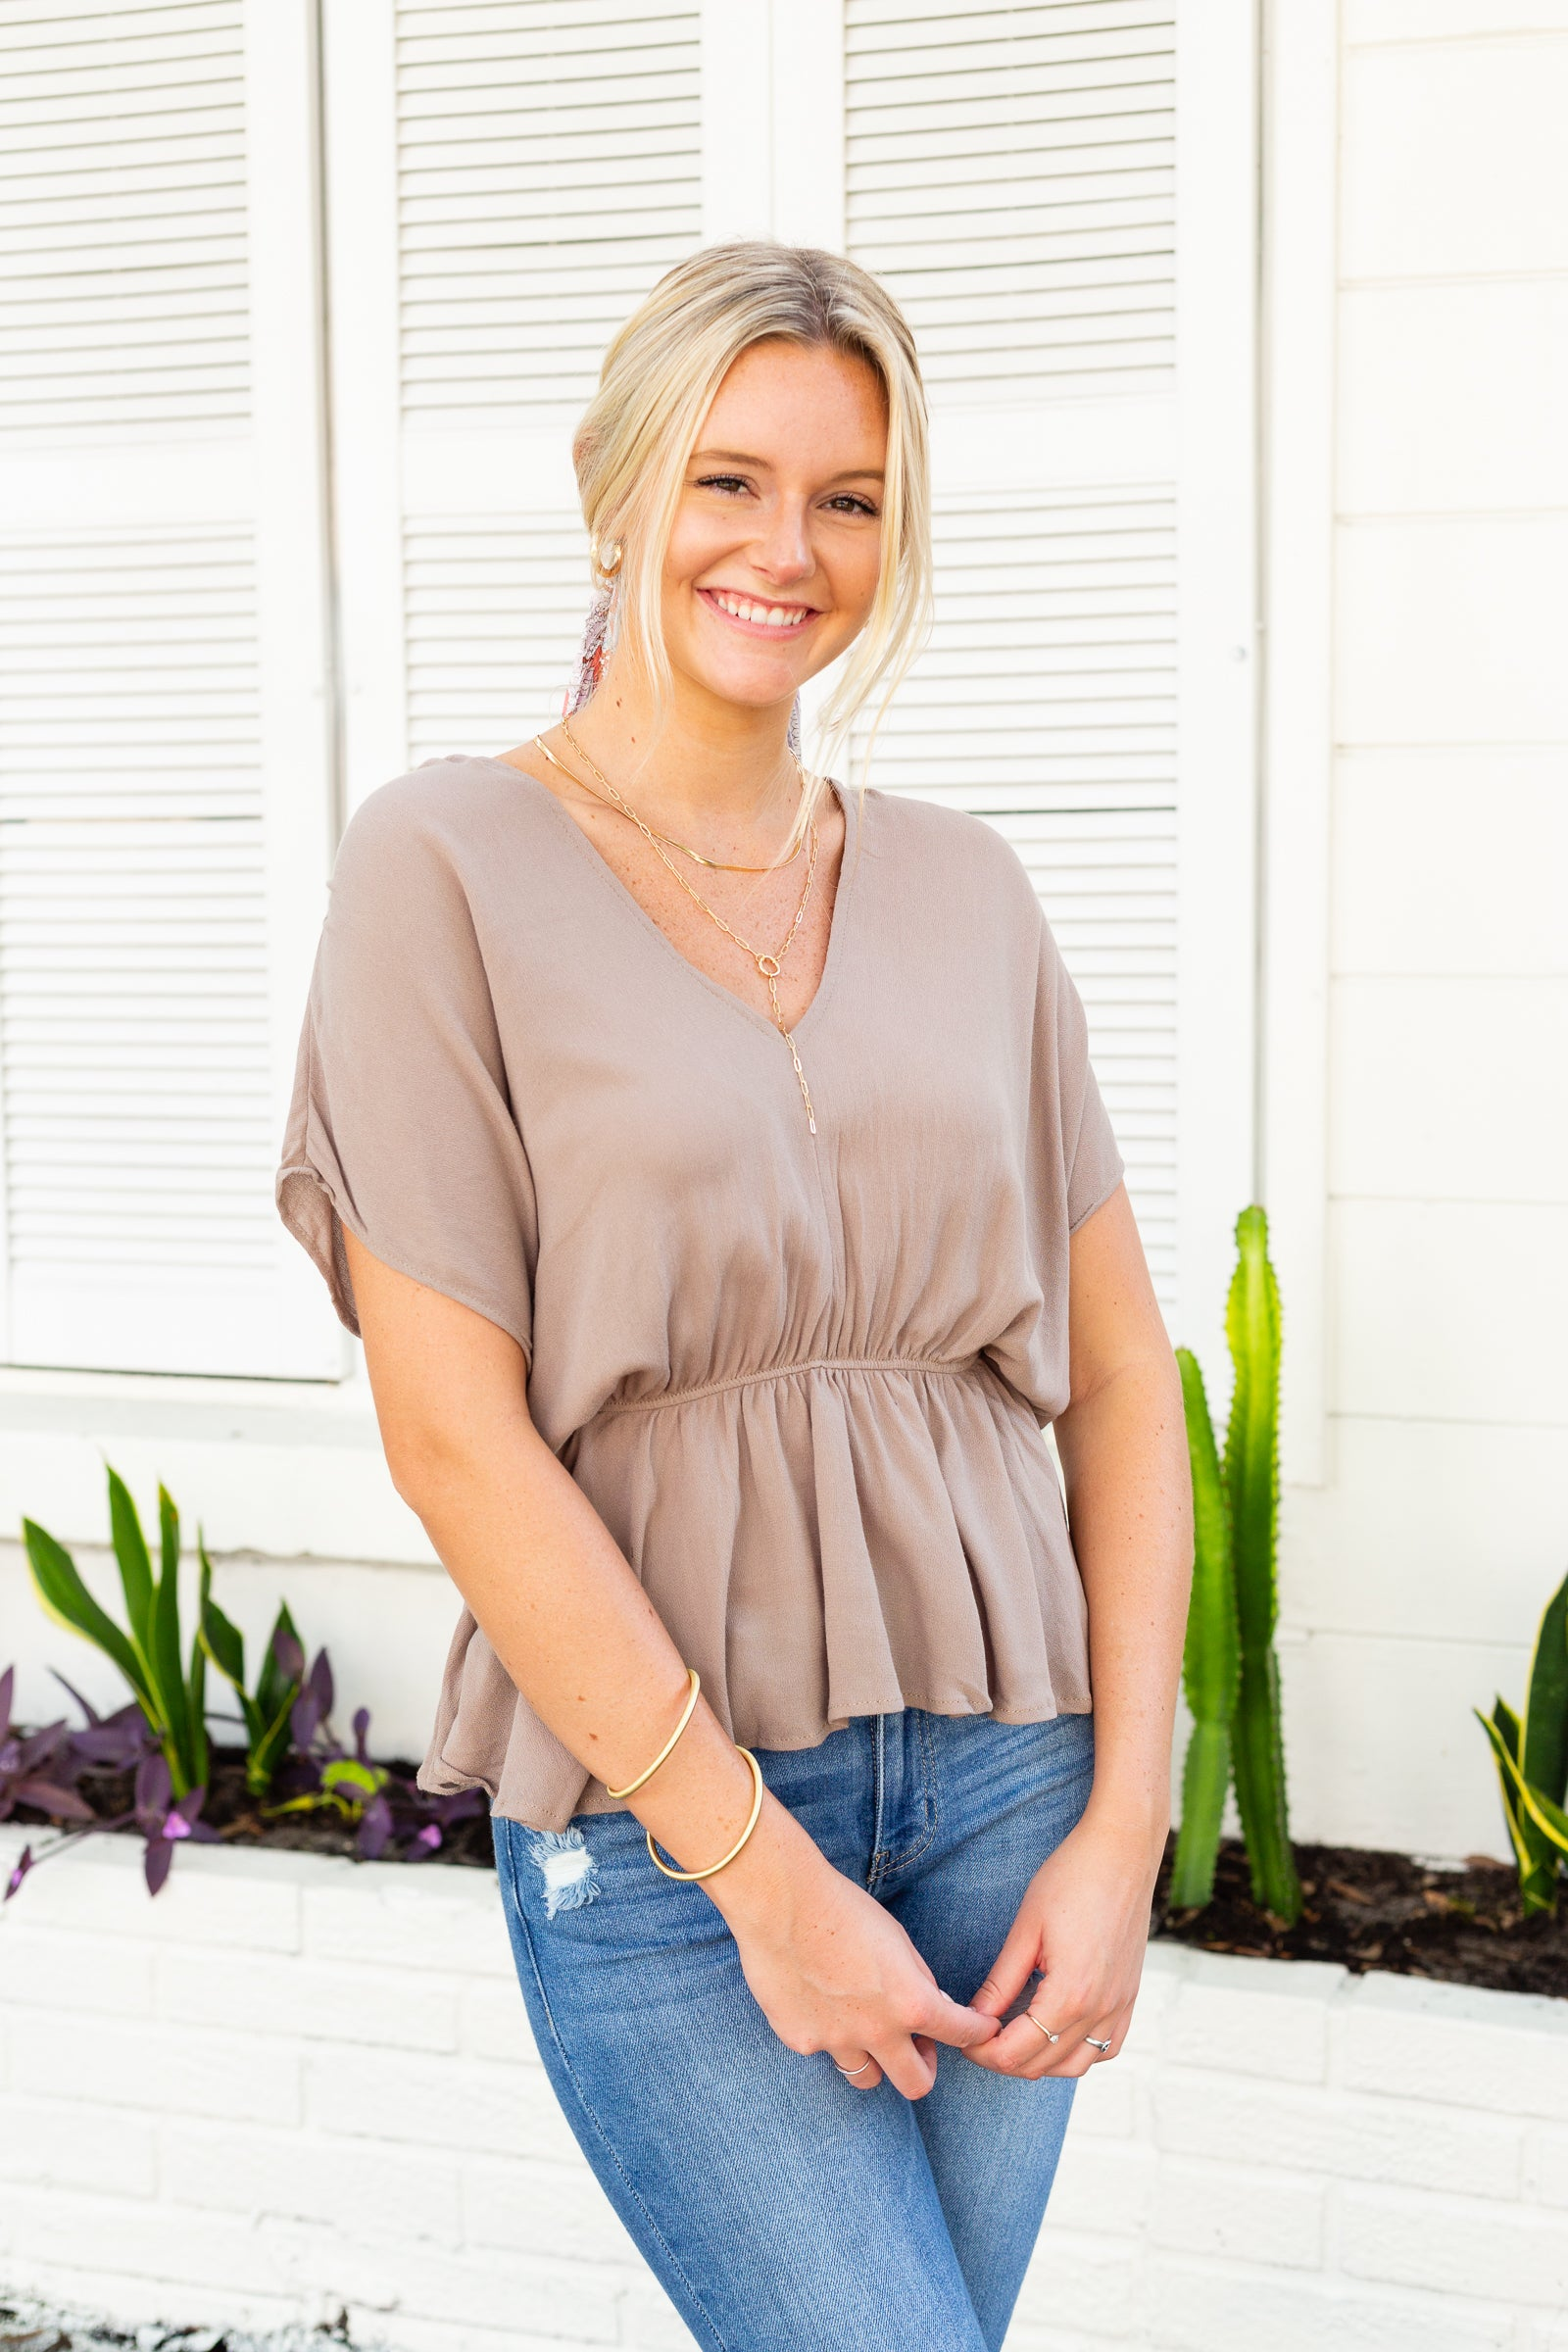 This lightweight top has short sleeves that attach to a v-neckline on an oversized and comfortable bodice meeting an elastic waistband and flow out into a peplum style hem at the bottom.